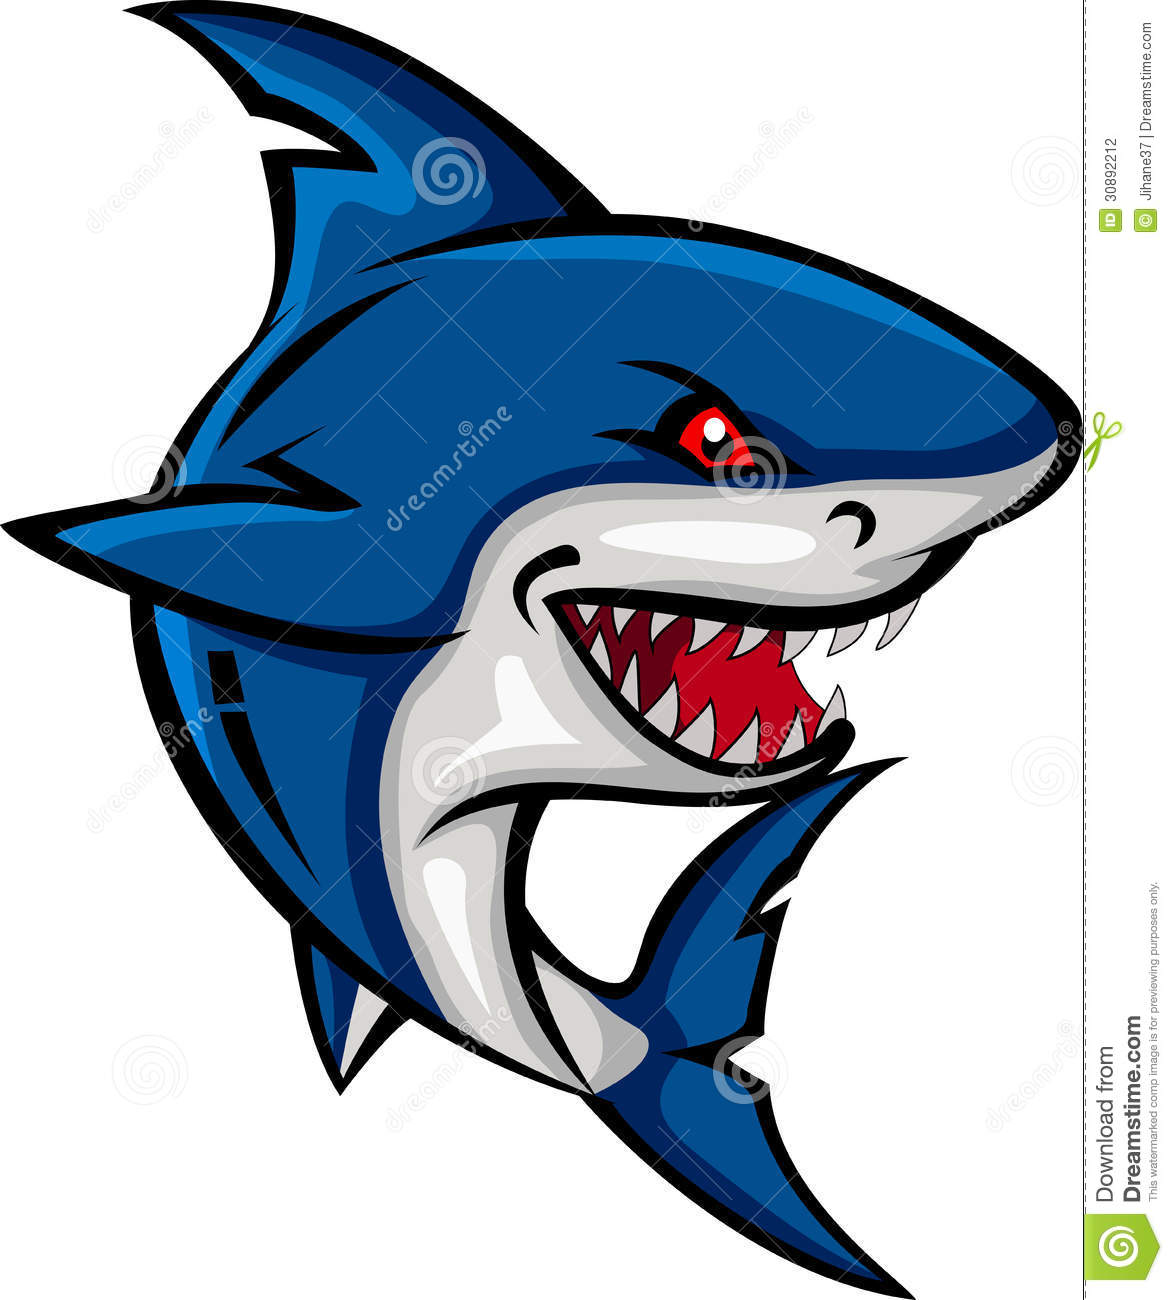 Shark Fin Graphic | Clipart Panda - Free Clipart Images